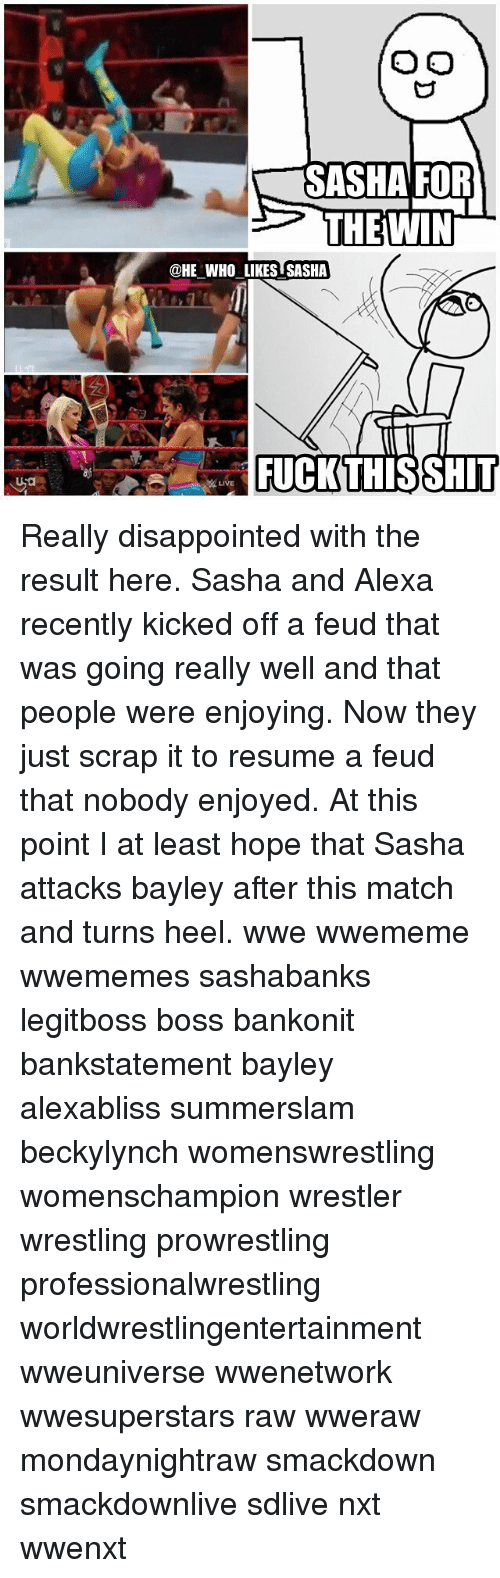 Disappointed, Memes, and Wrestling: SASHA FOR  THEWIN  @HE WHO LIKES SASHA  FUCKTHISSHIT  LIVE Really disappointed with the result here. Sasha and Alexa recently kicked off a feud that was going really well and that people were enjoying. Now they just scrap it to resume a feud that nobody enjoyed. At this point I at least hope that Sasha attacks bayley after this match and turns heel. wwe wwememe wwememes sashabanks legitboss boss bankonit bankstatement bayley alexabliss summerslam beckylynch womenswrestling womenschampion wrestler wrestling prowrestling professionalwrestling worldwrestlingentertainment wweuniverse wwenetwork wwesuperstars raw wweraw mondaynightraw smackdown smackdownlive sdlive nxt wwenxt